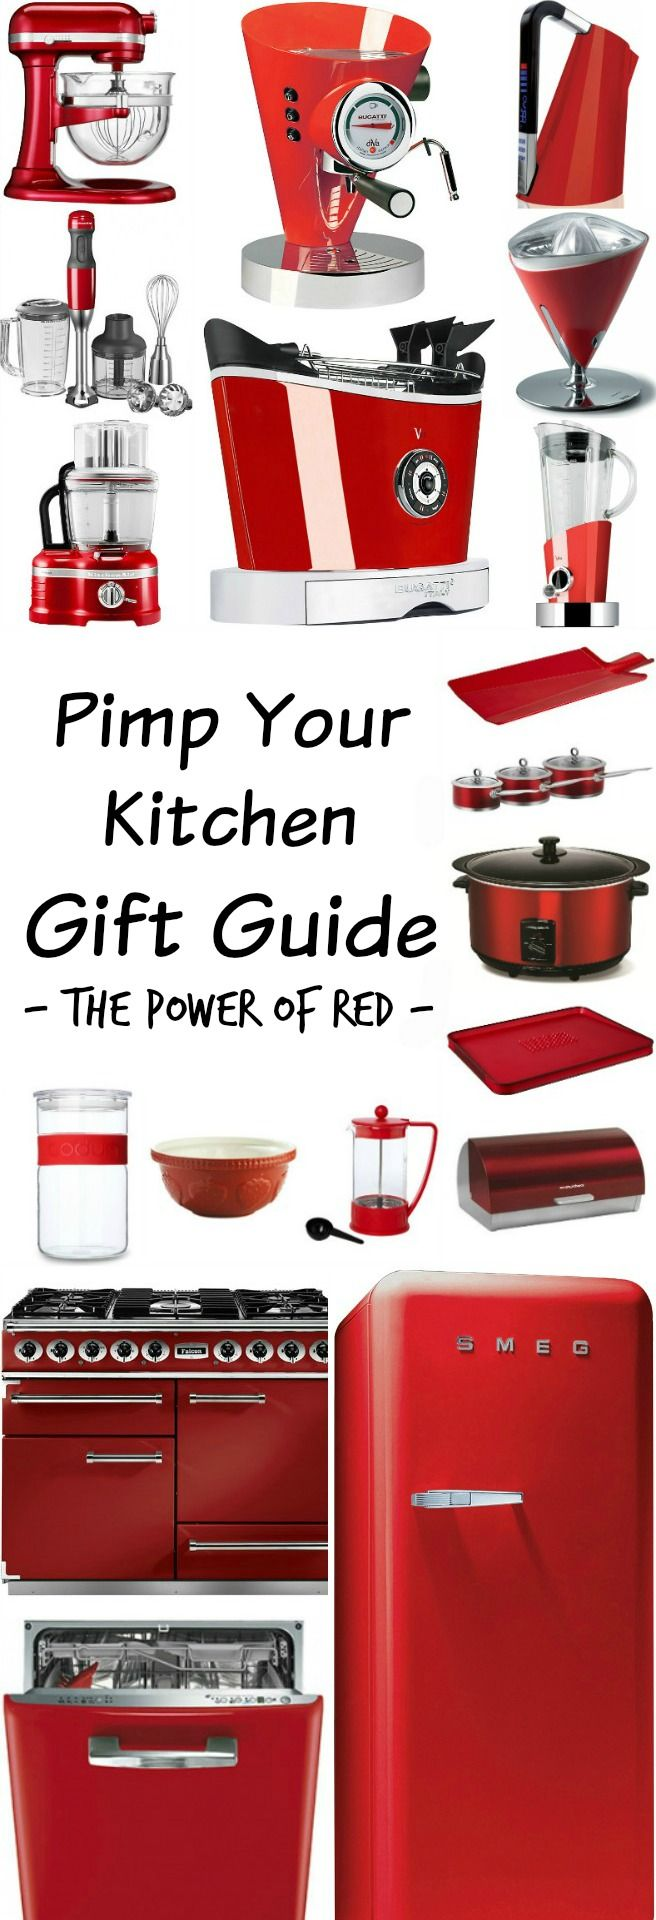 Pimp Your Kitchen Gift Guide – The Power of Red